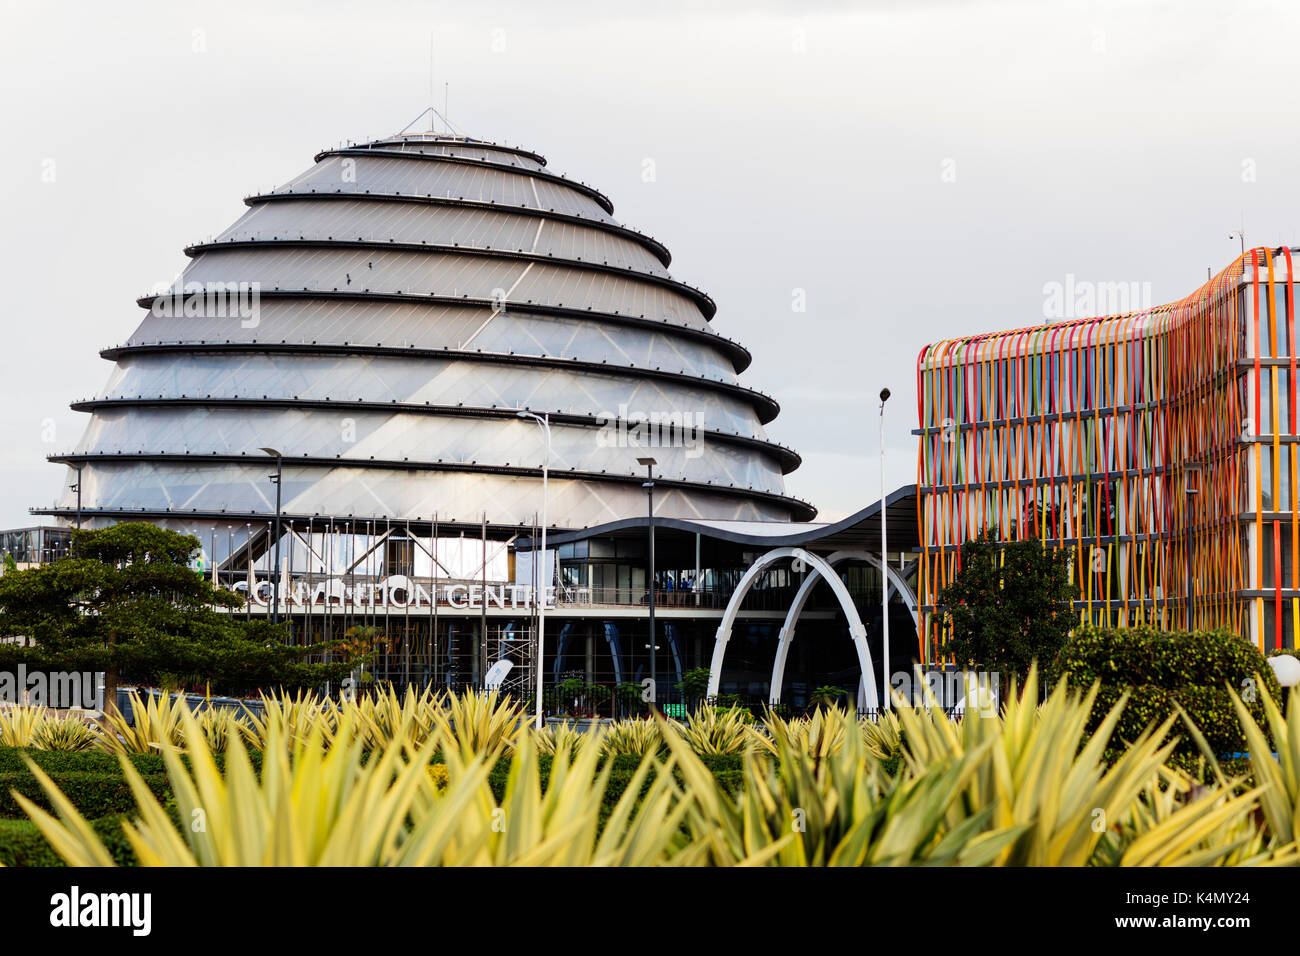 Radisson Hotel and Convention Center, Kigali, Rwanda, Africa - Stock Image